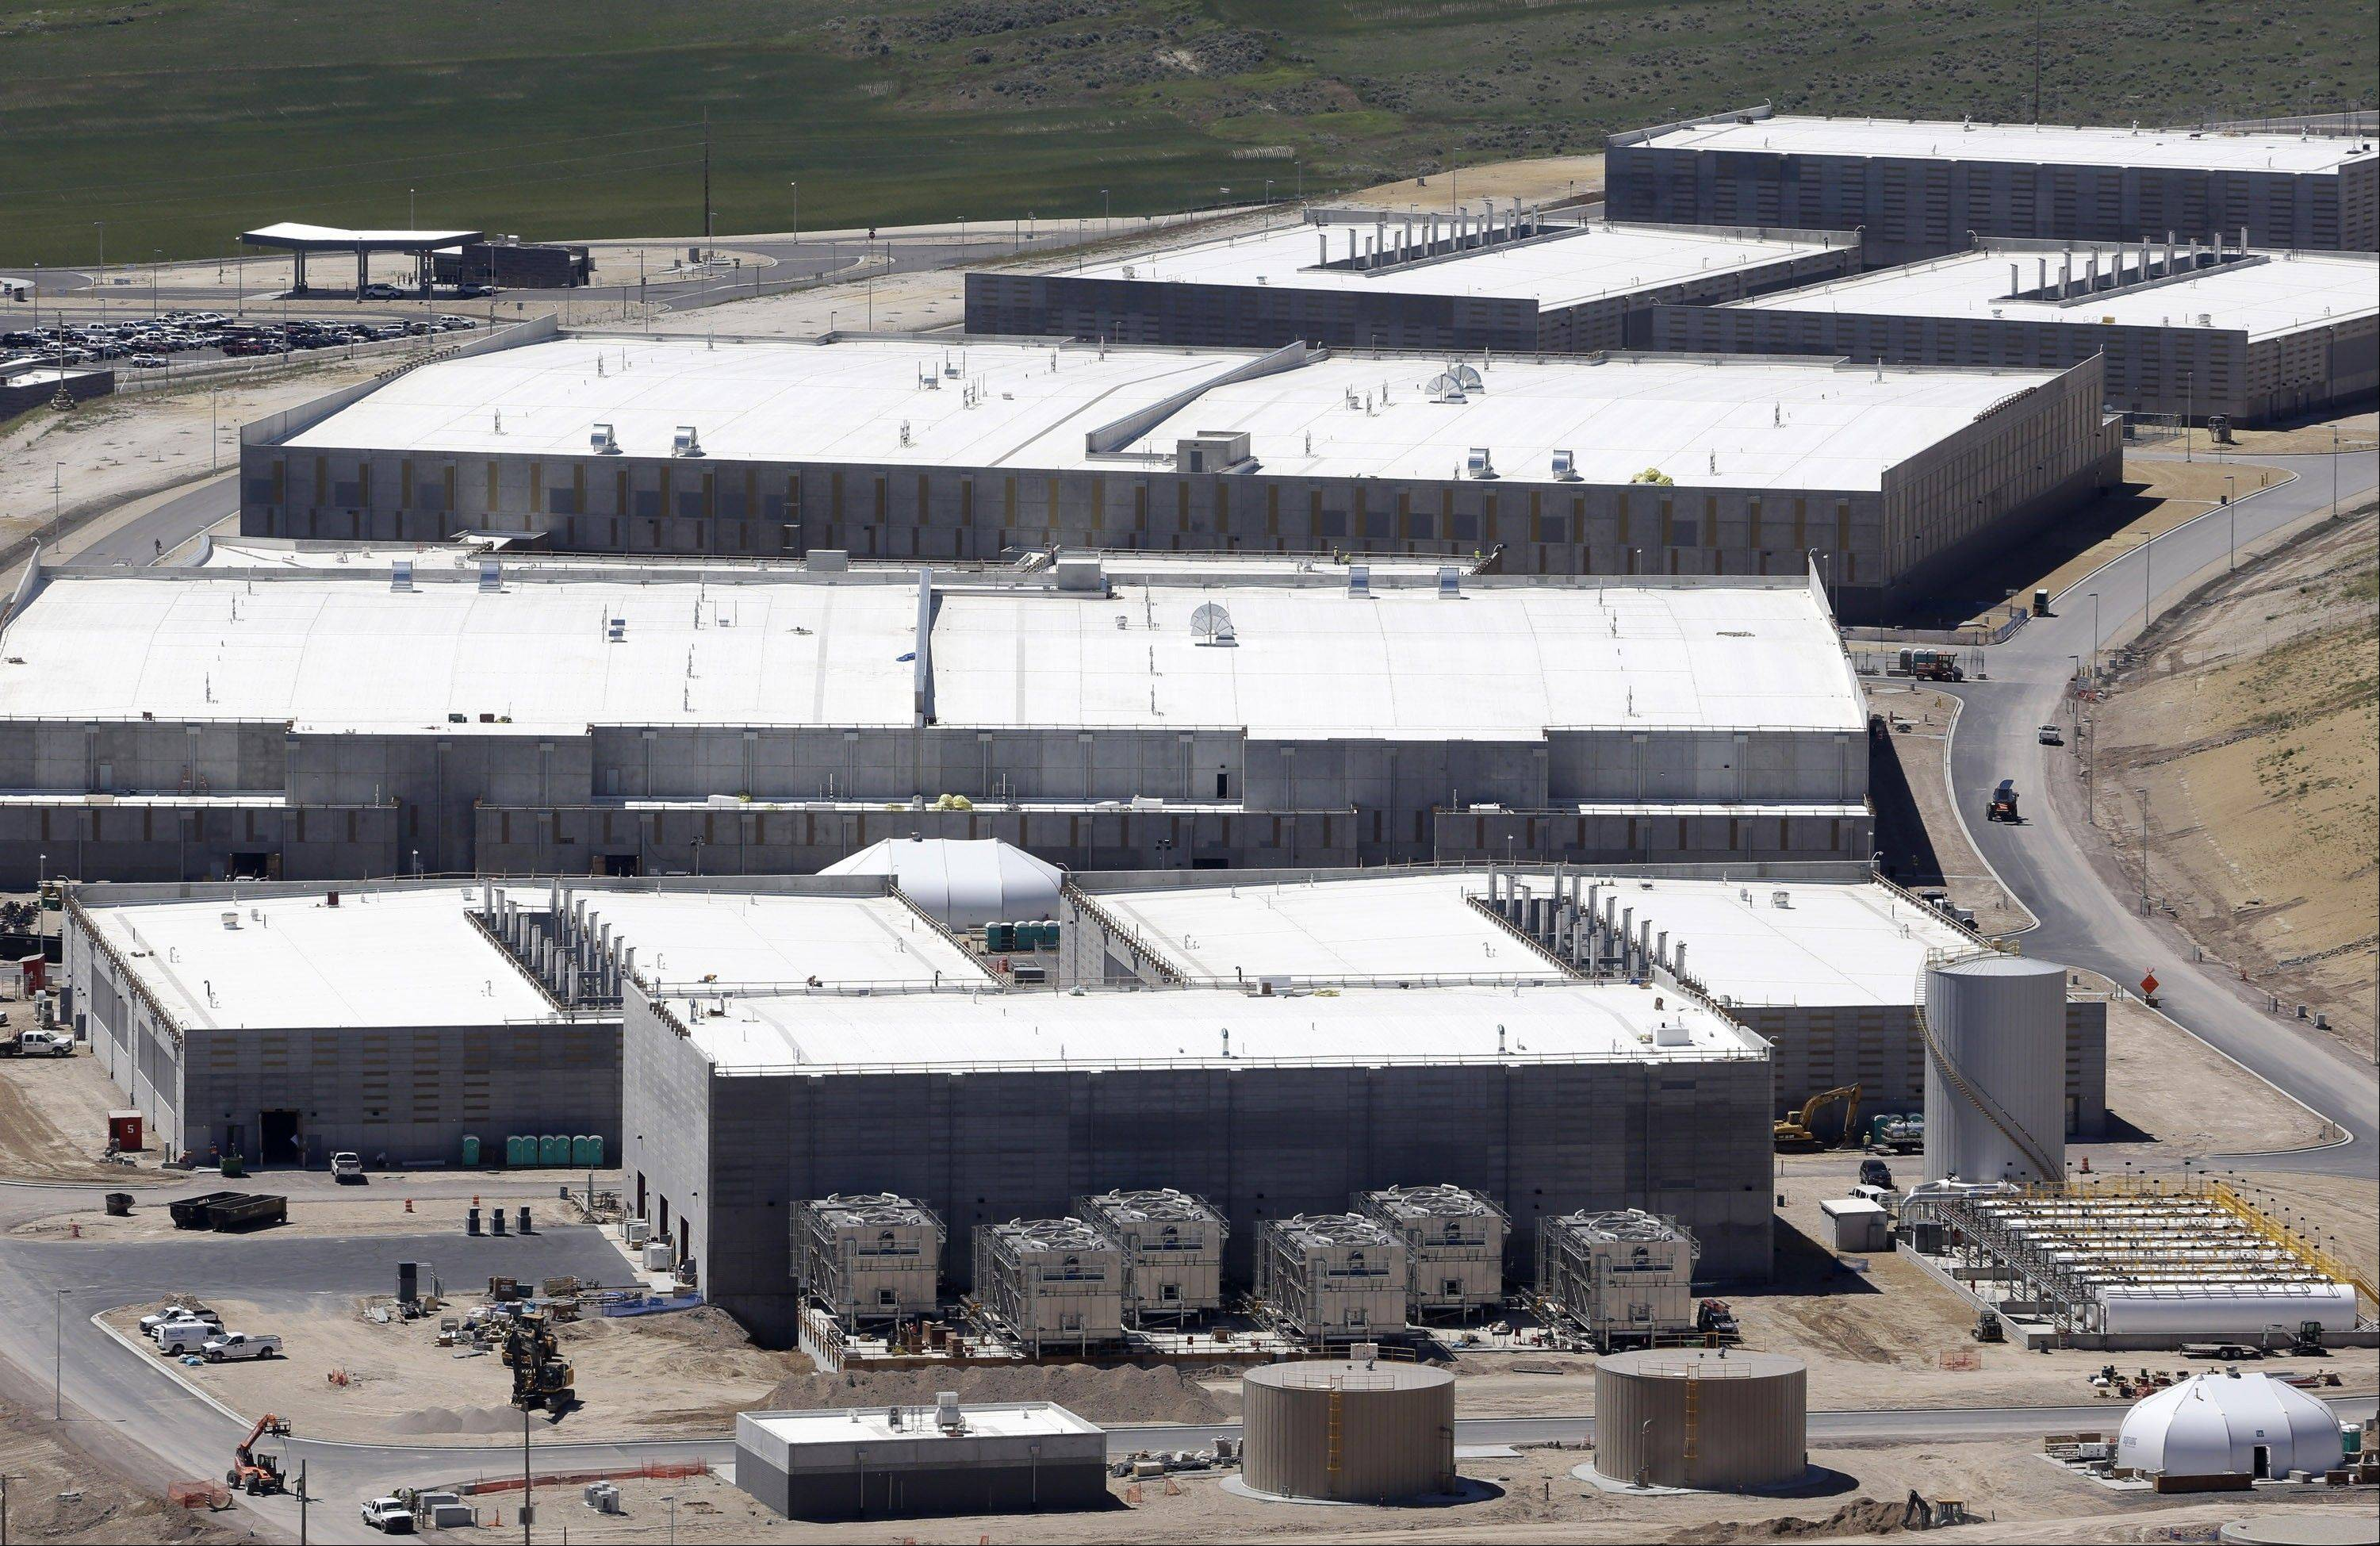 NSA�s Utah Data Center. Newly declassified documents released Tuesday Sept. 10, 2013 tell a story of a surveillance apparatus so unwieldy and complex that nobody fully comprehended it, even as the government pointed it at the American people in the name of protecting them.